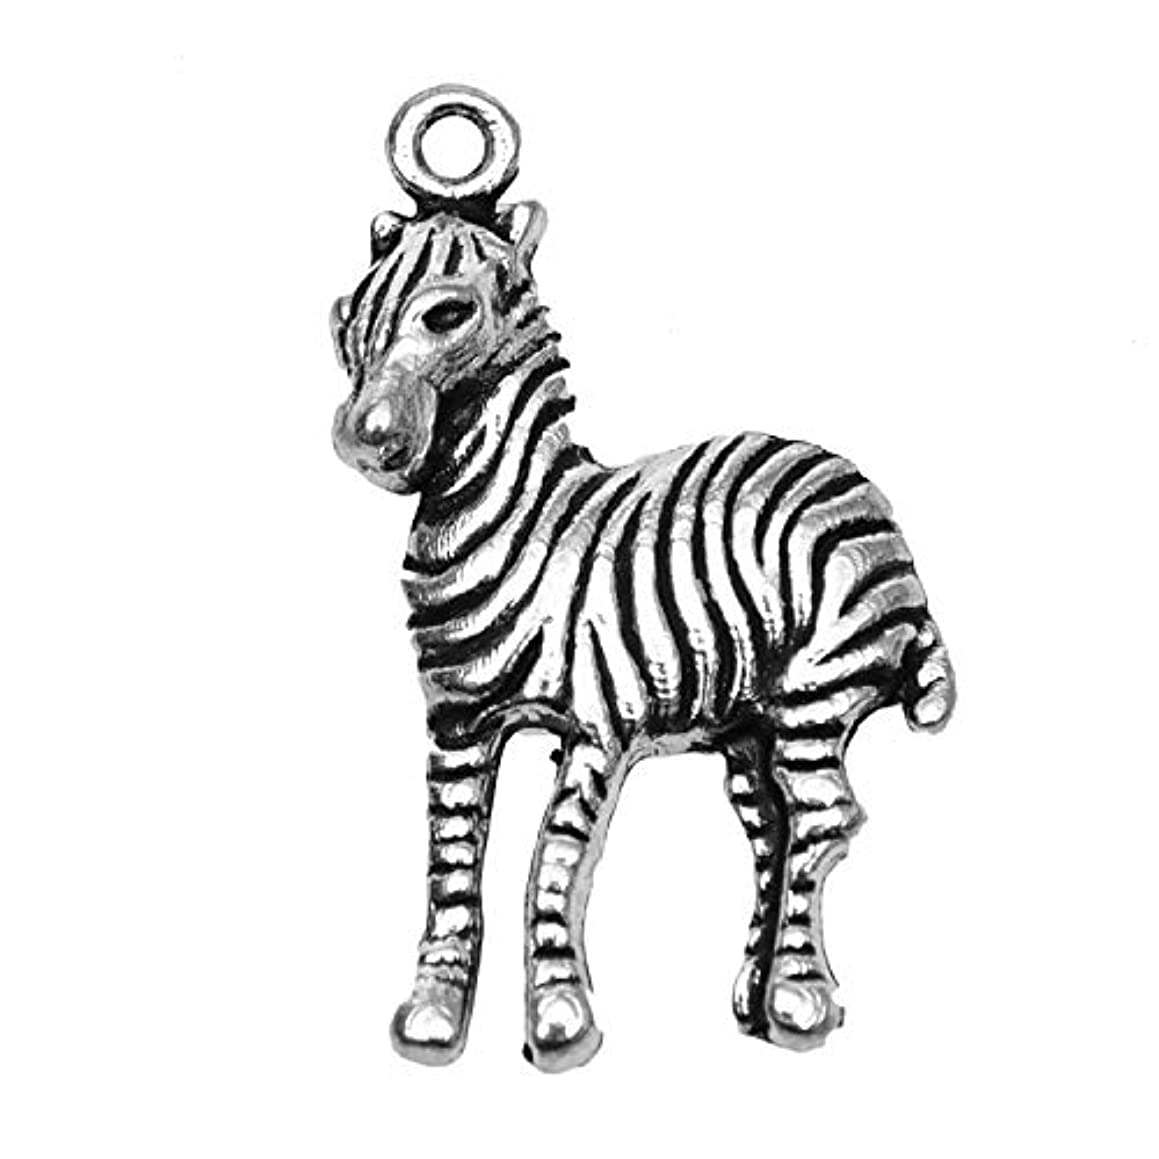 Monrocco 20pcs Antique Silver Zebra Charms Tibetan Style Alloy Horse Animals Charms Pendants Beads Charms for DIY Bracelet Necklace Jewelry Making